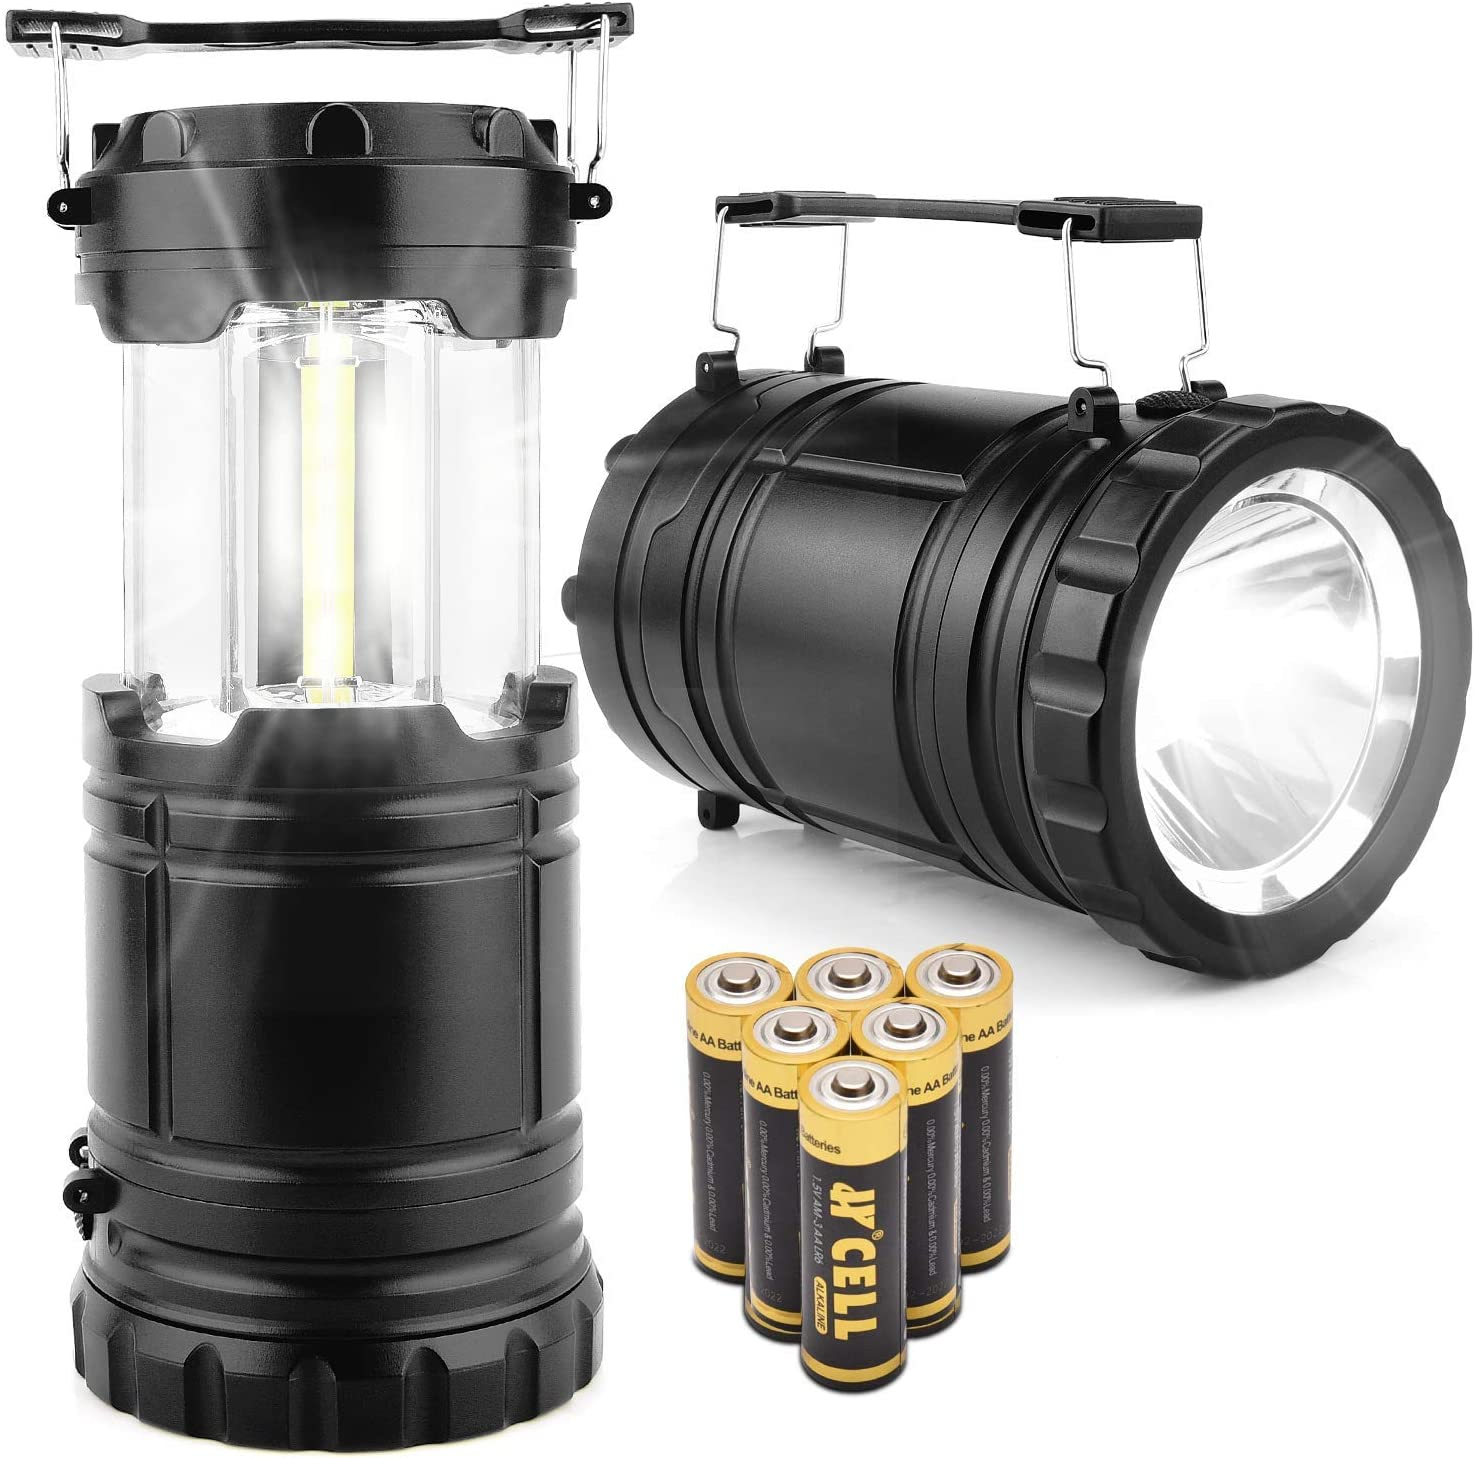 COB LED Camping Lamp Portable Collapsible Tent Lantern Light for Outdoor TN2F